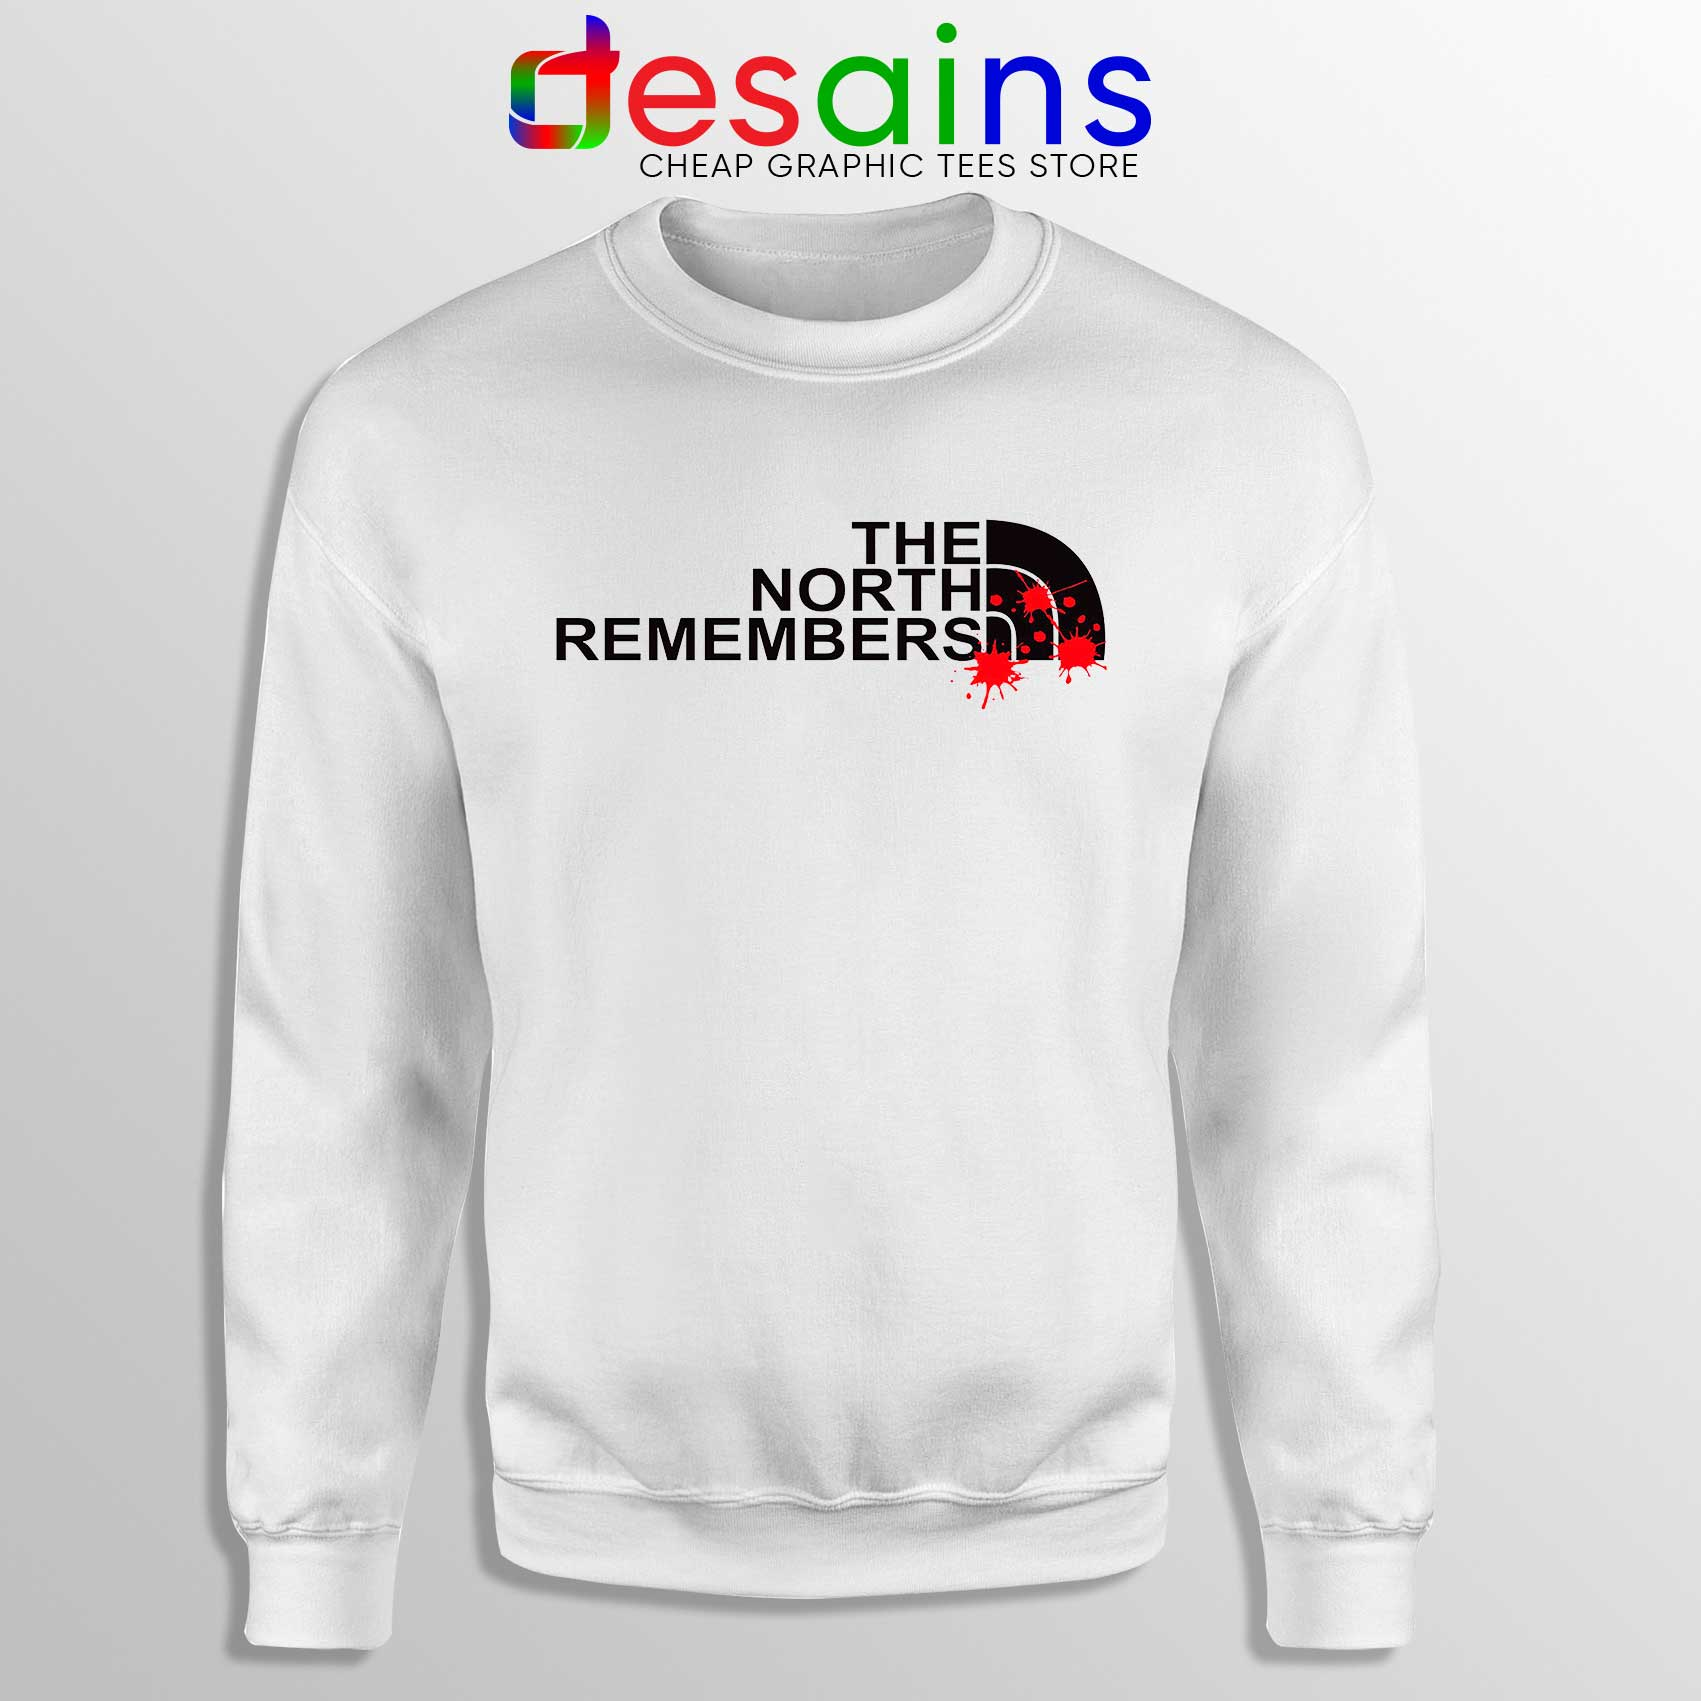 39039e805 Buy Sweatshirt The North Remembers North Face Crewneck Size S-3XL